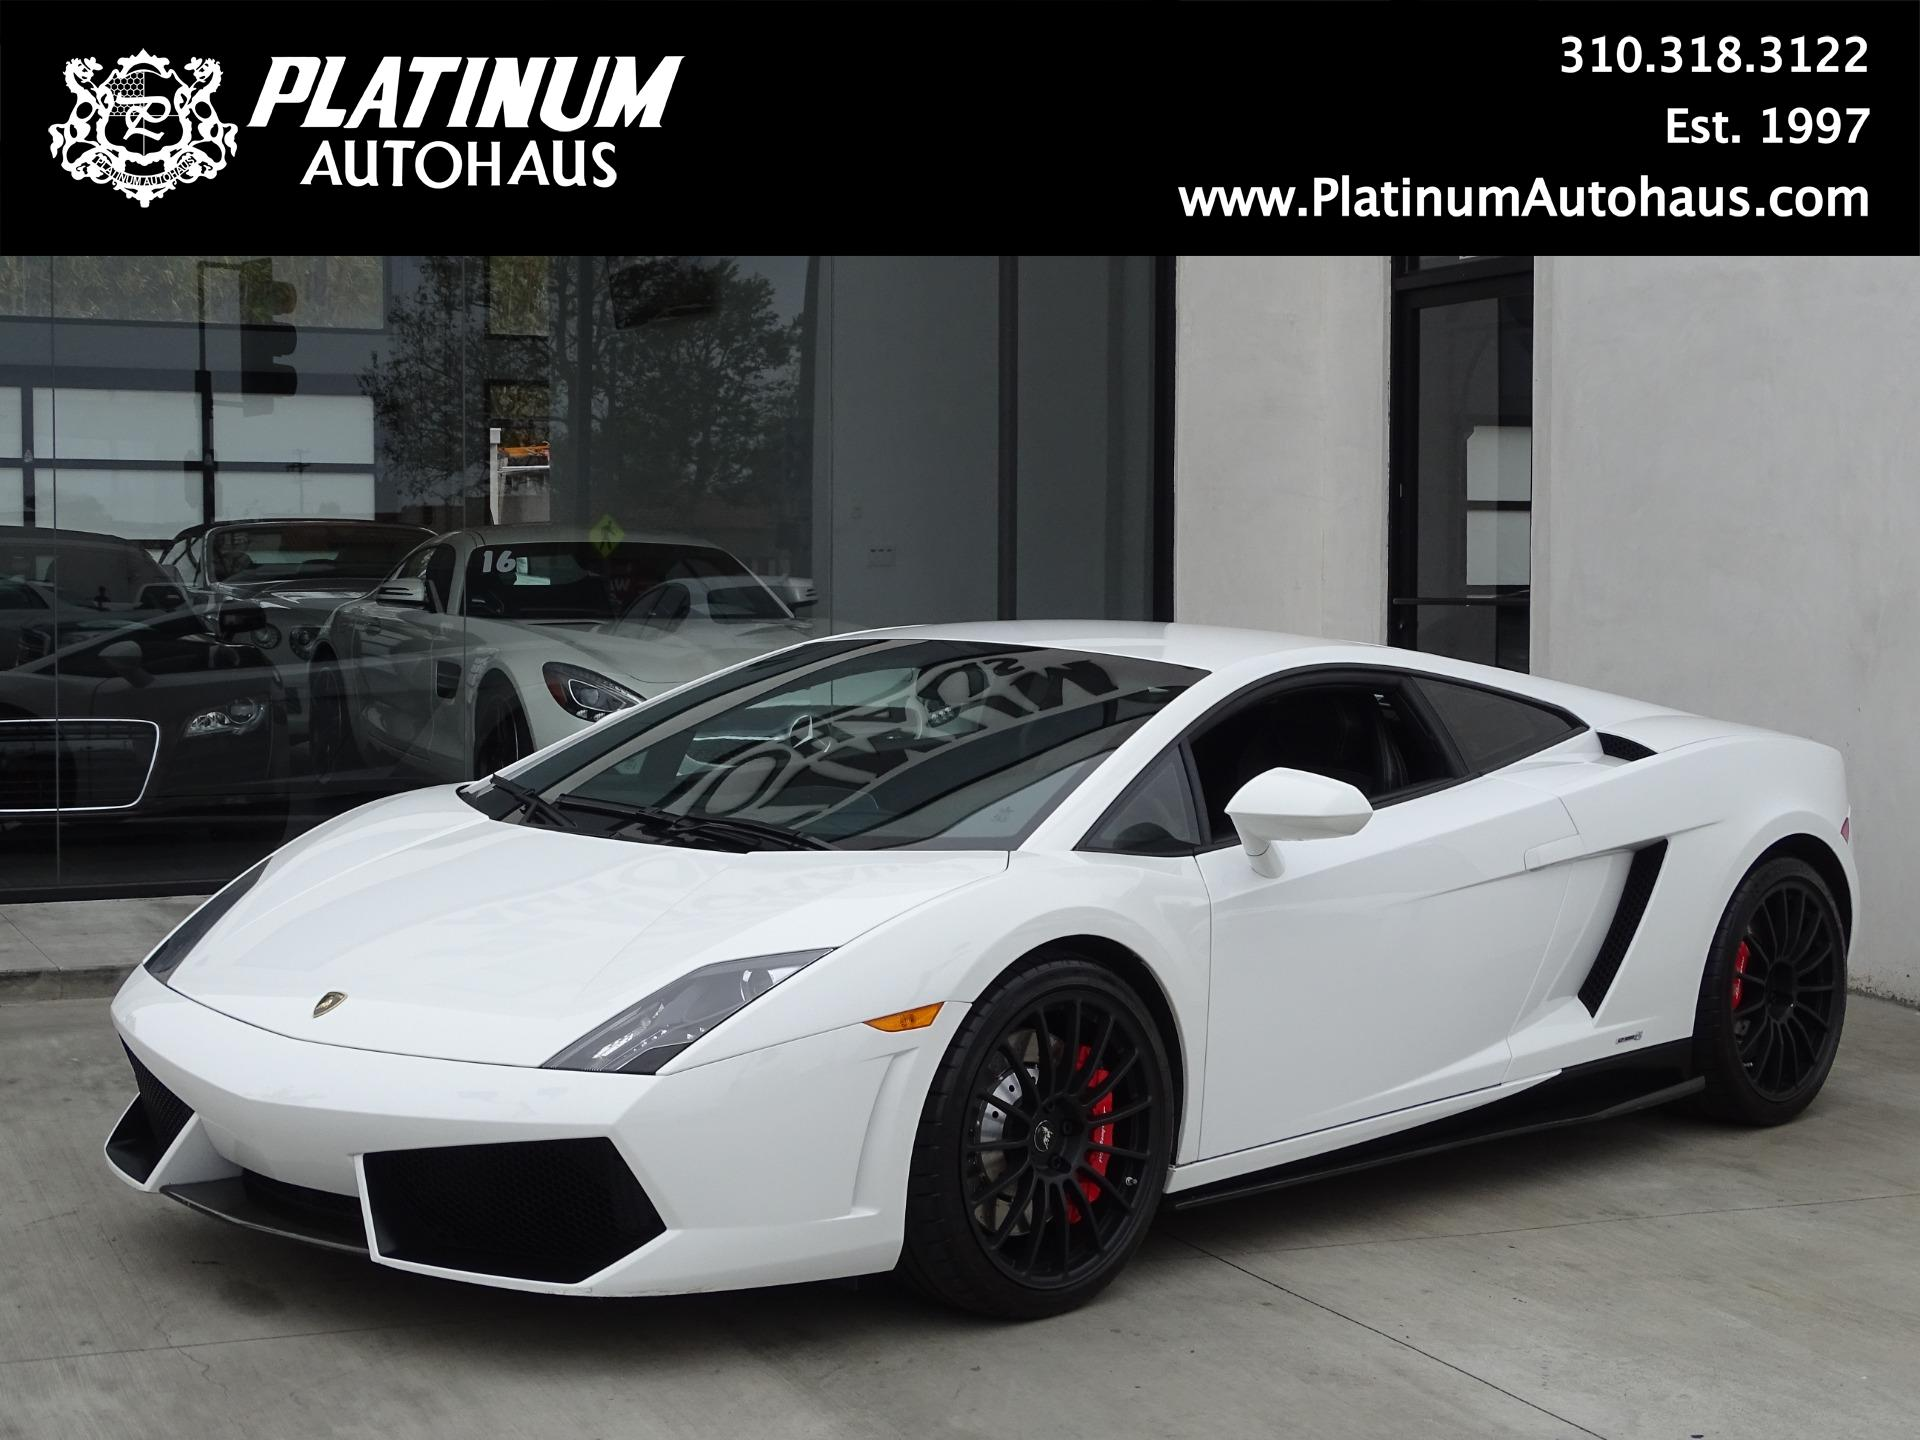 2012 Lamborghini Gallardo Lp 550 2 Stock 6502 For Sale Near